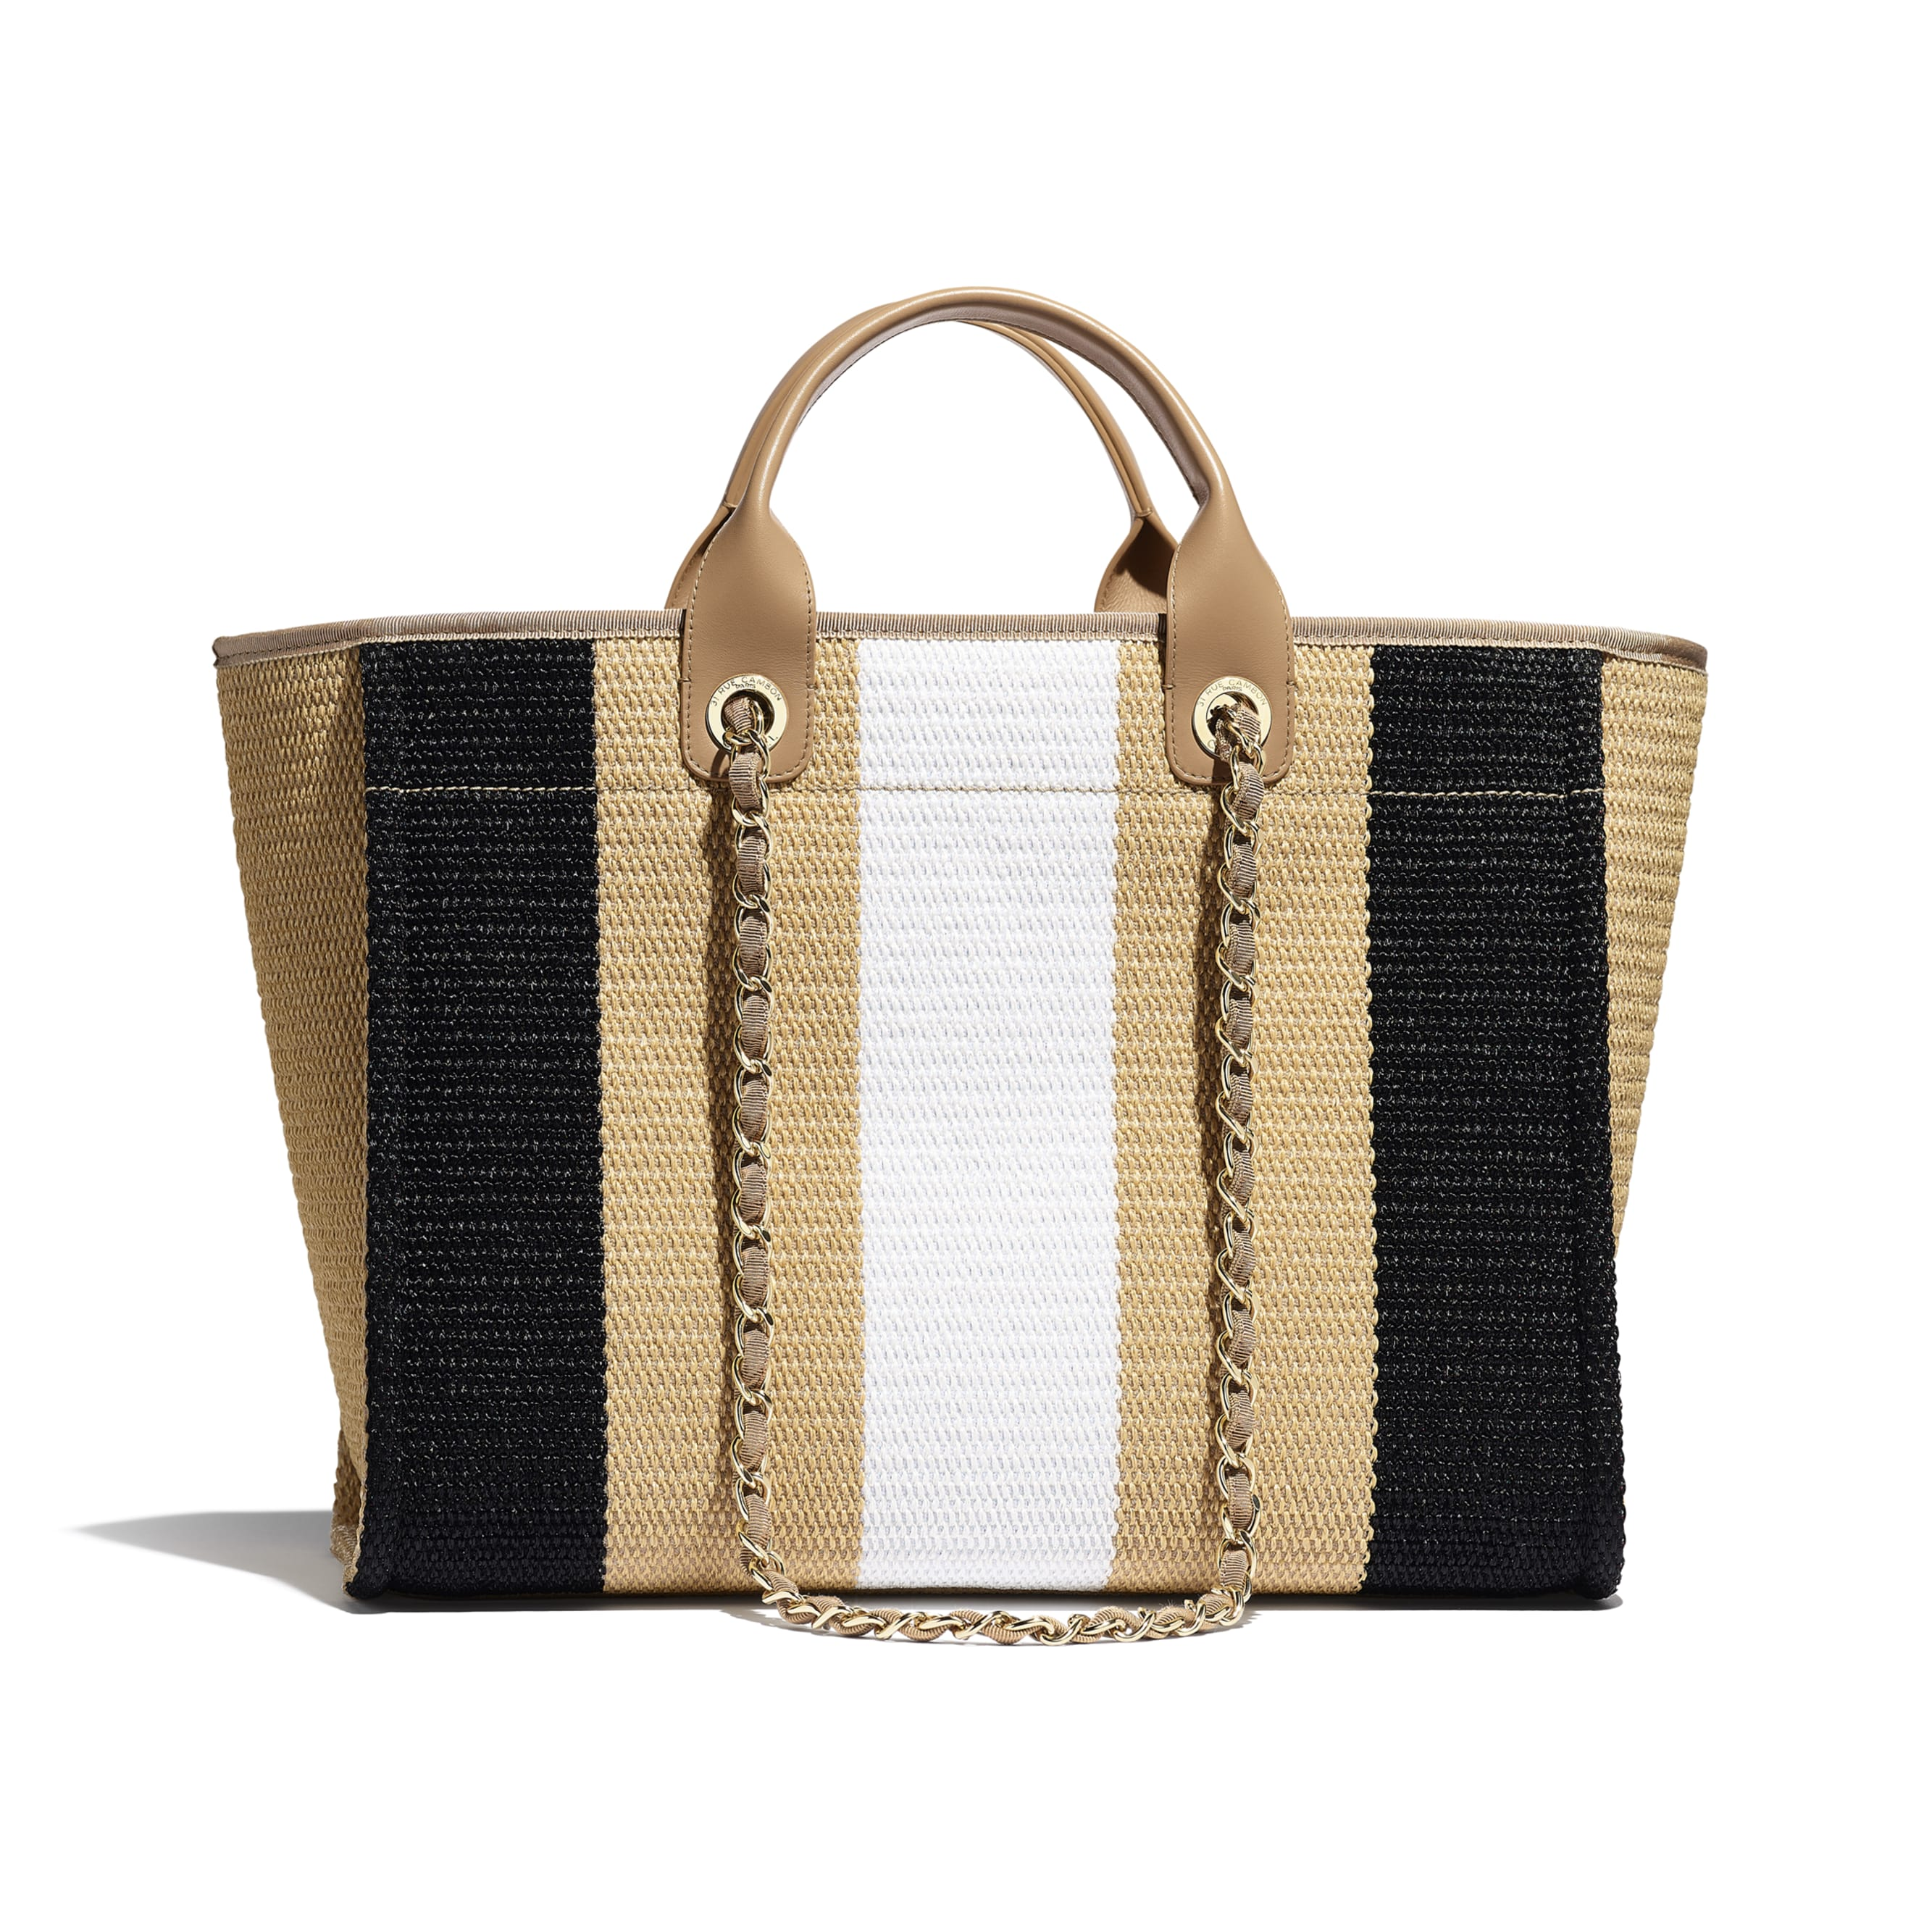 Large Tote - Beige, Black & Ivory - Viscose, Cotton, Calfskin & Gold-Tone Metal - CHANEL - Alternative view - see standard sized version